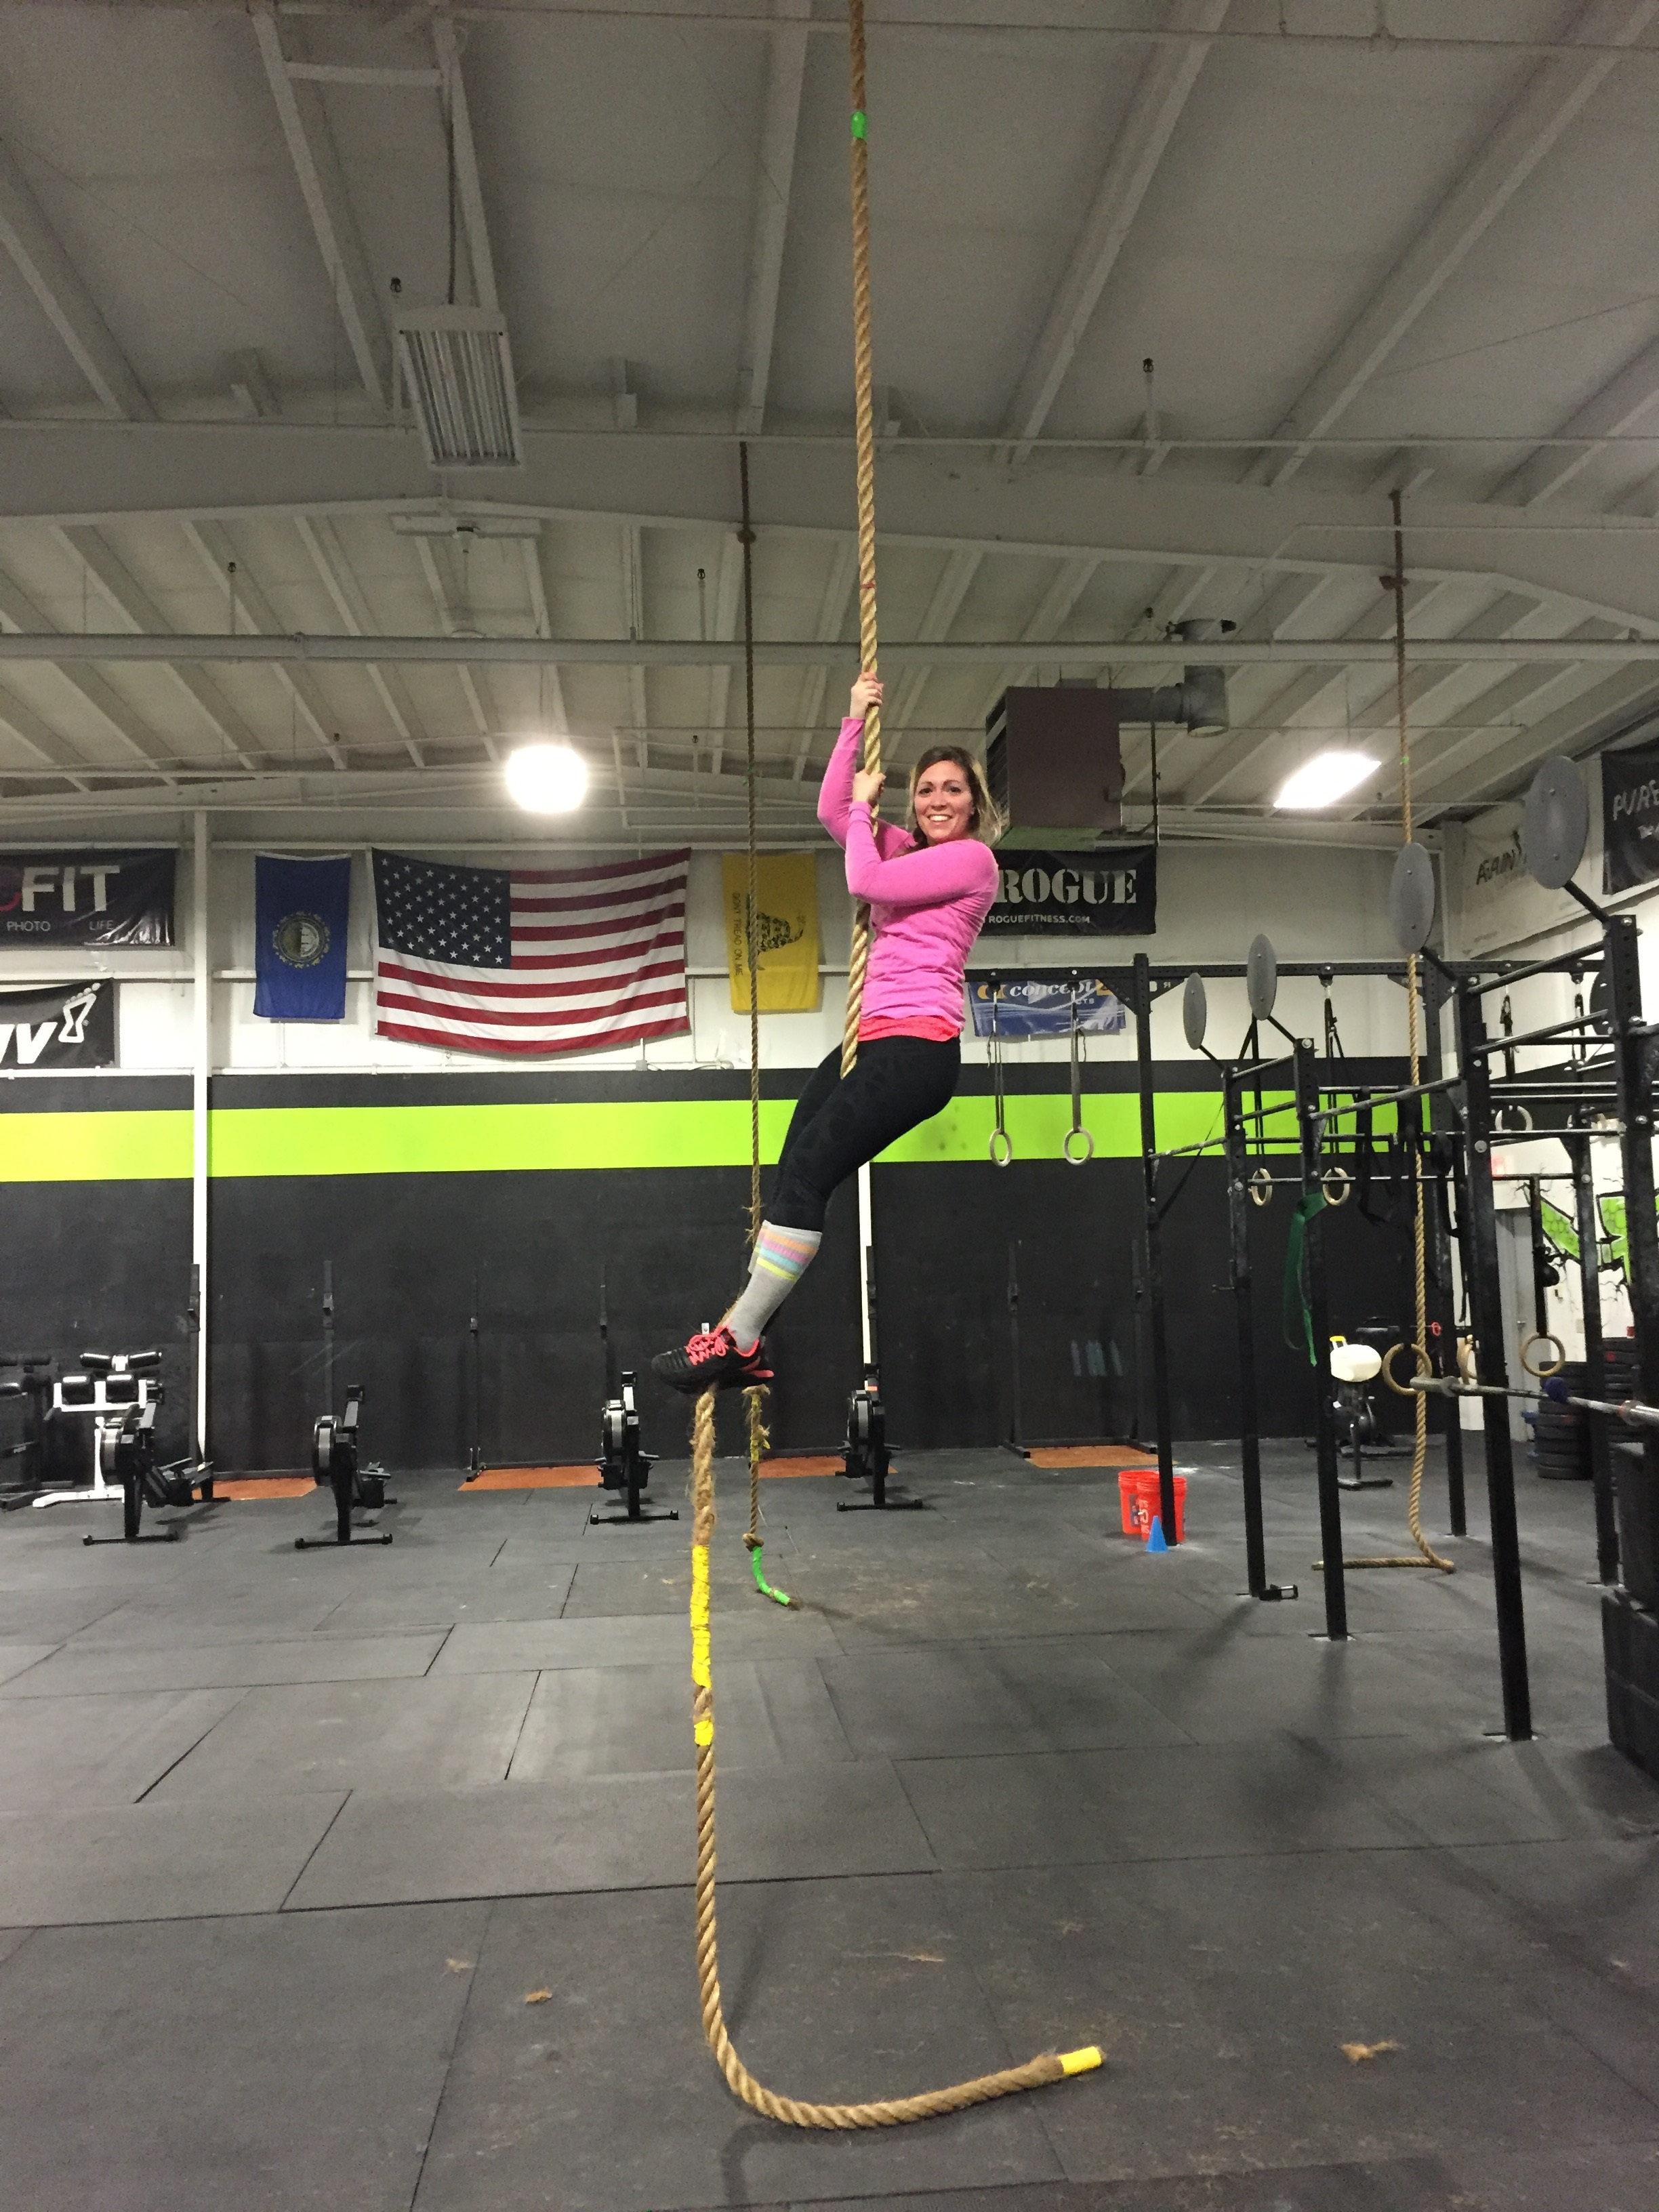 First rope climb today!!